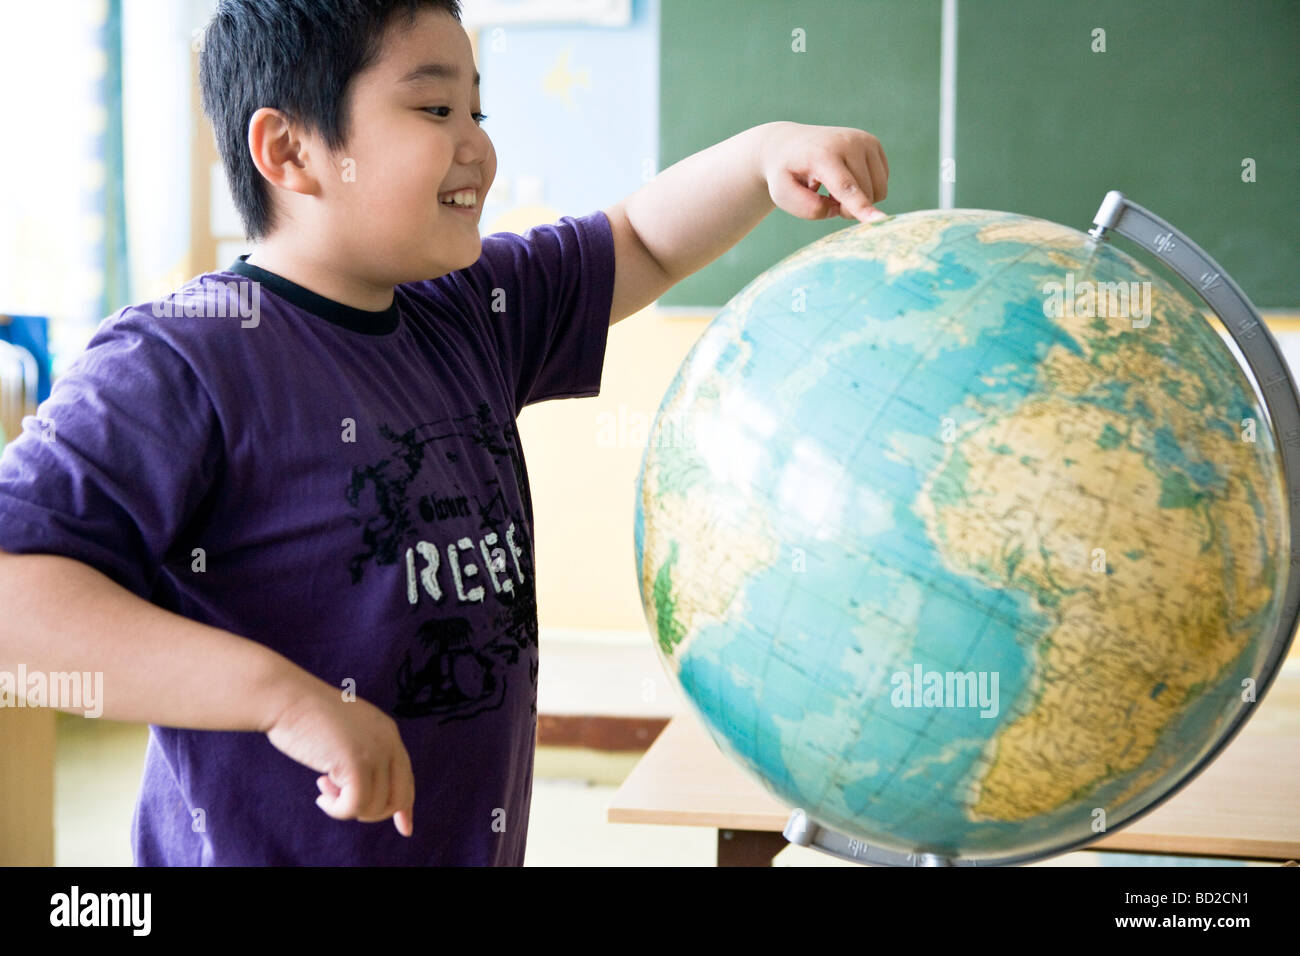 boy looking at globe in class - Stock Image